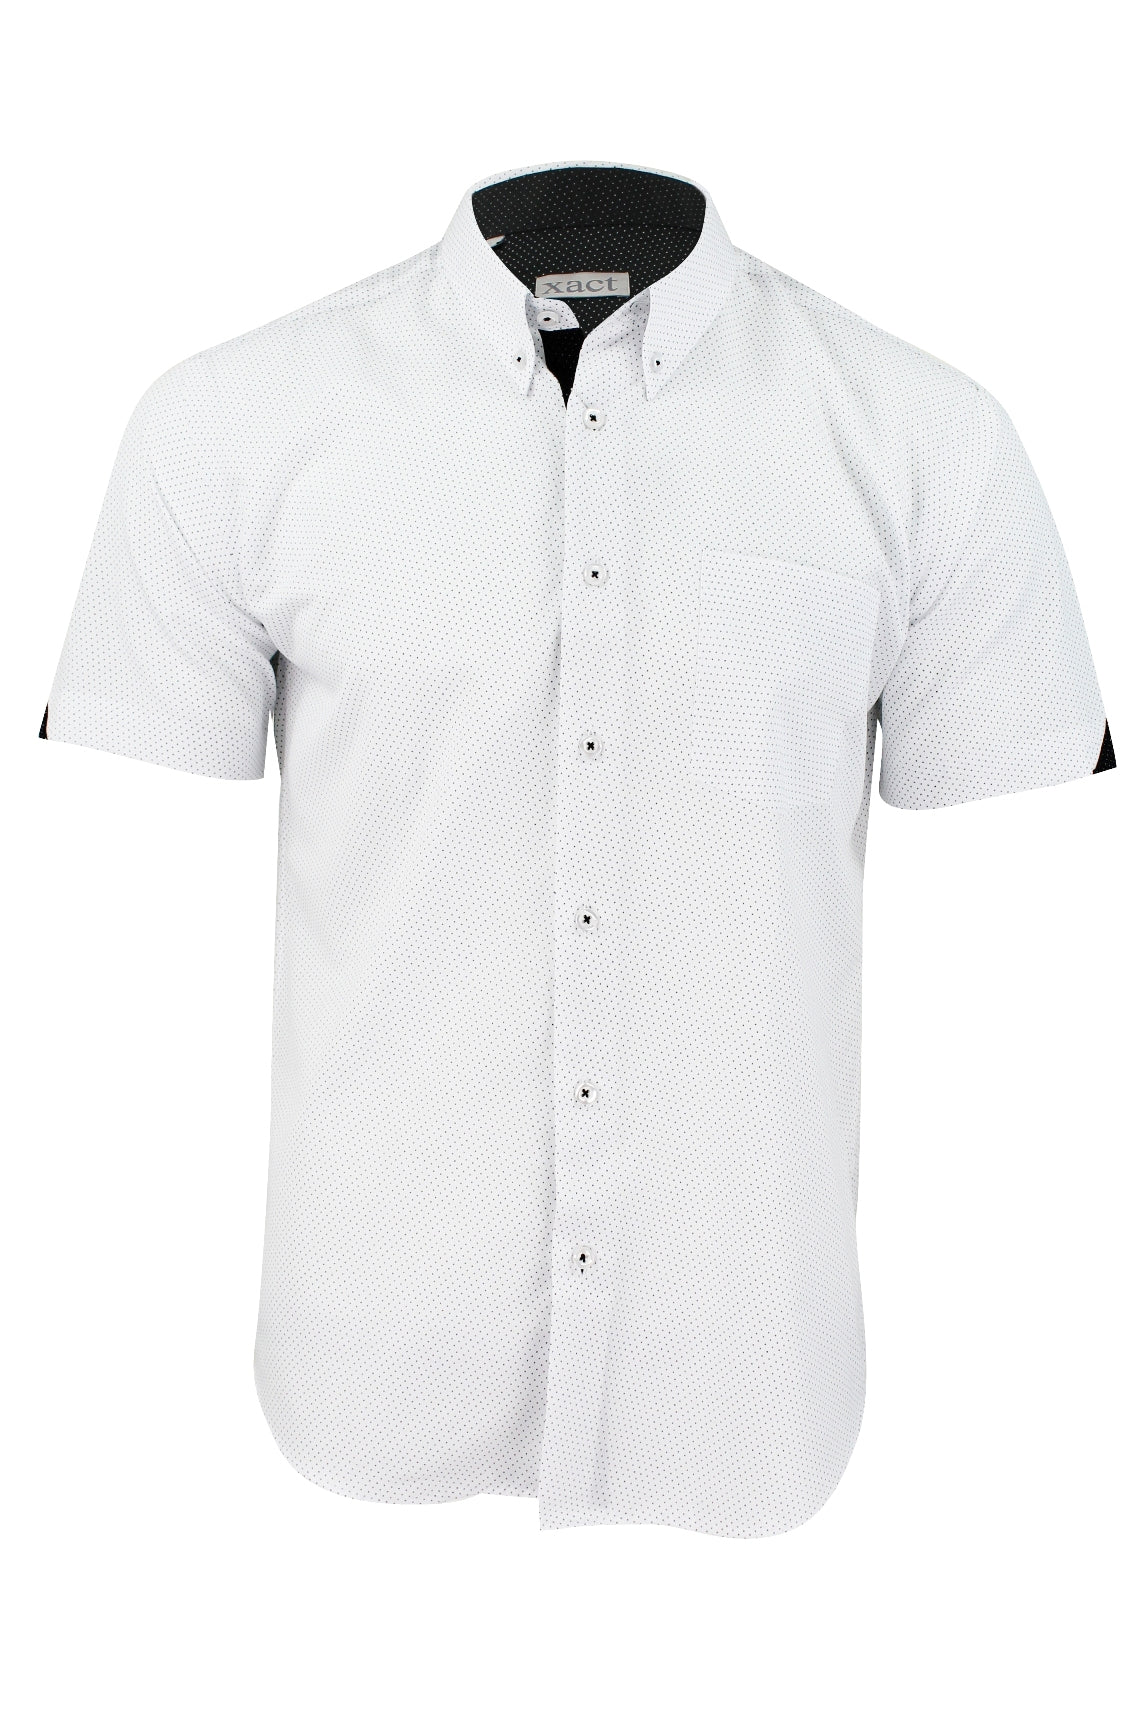 Mens Short Sleeved Shirt by Xact Clothing Mini Polka Dot-Main Image